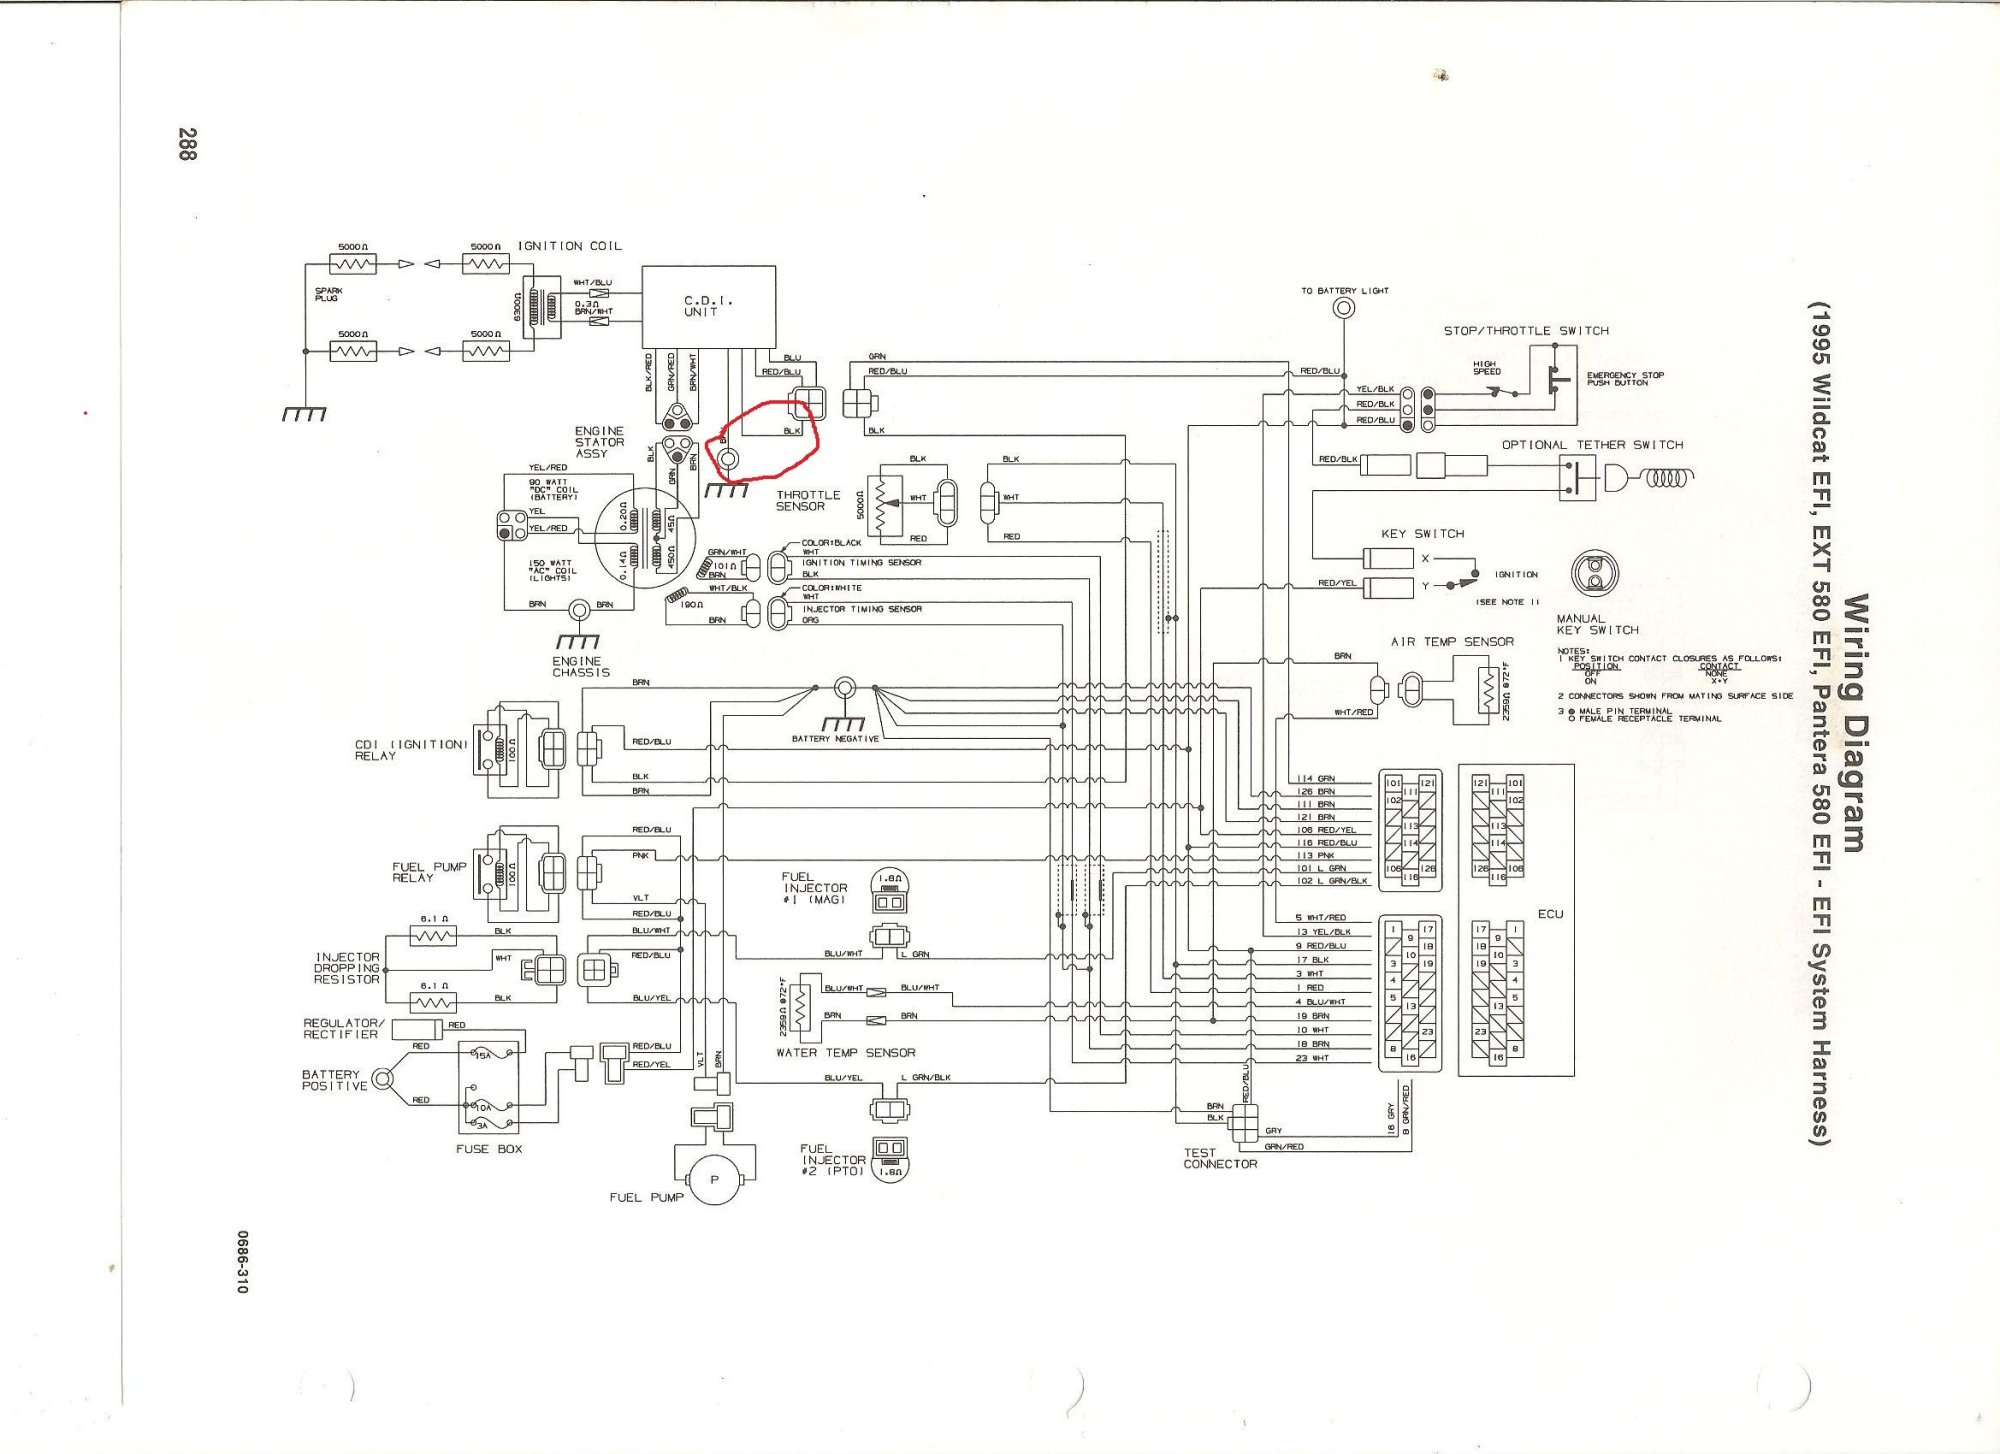 hight resolution of 1991 wildcat wiring diagram wiring diagram blogs arctic cat atv wiring diagrams wildcat wiring diagram